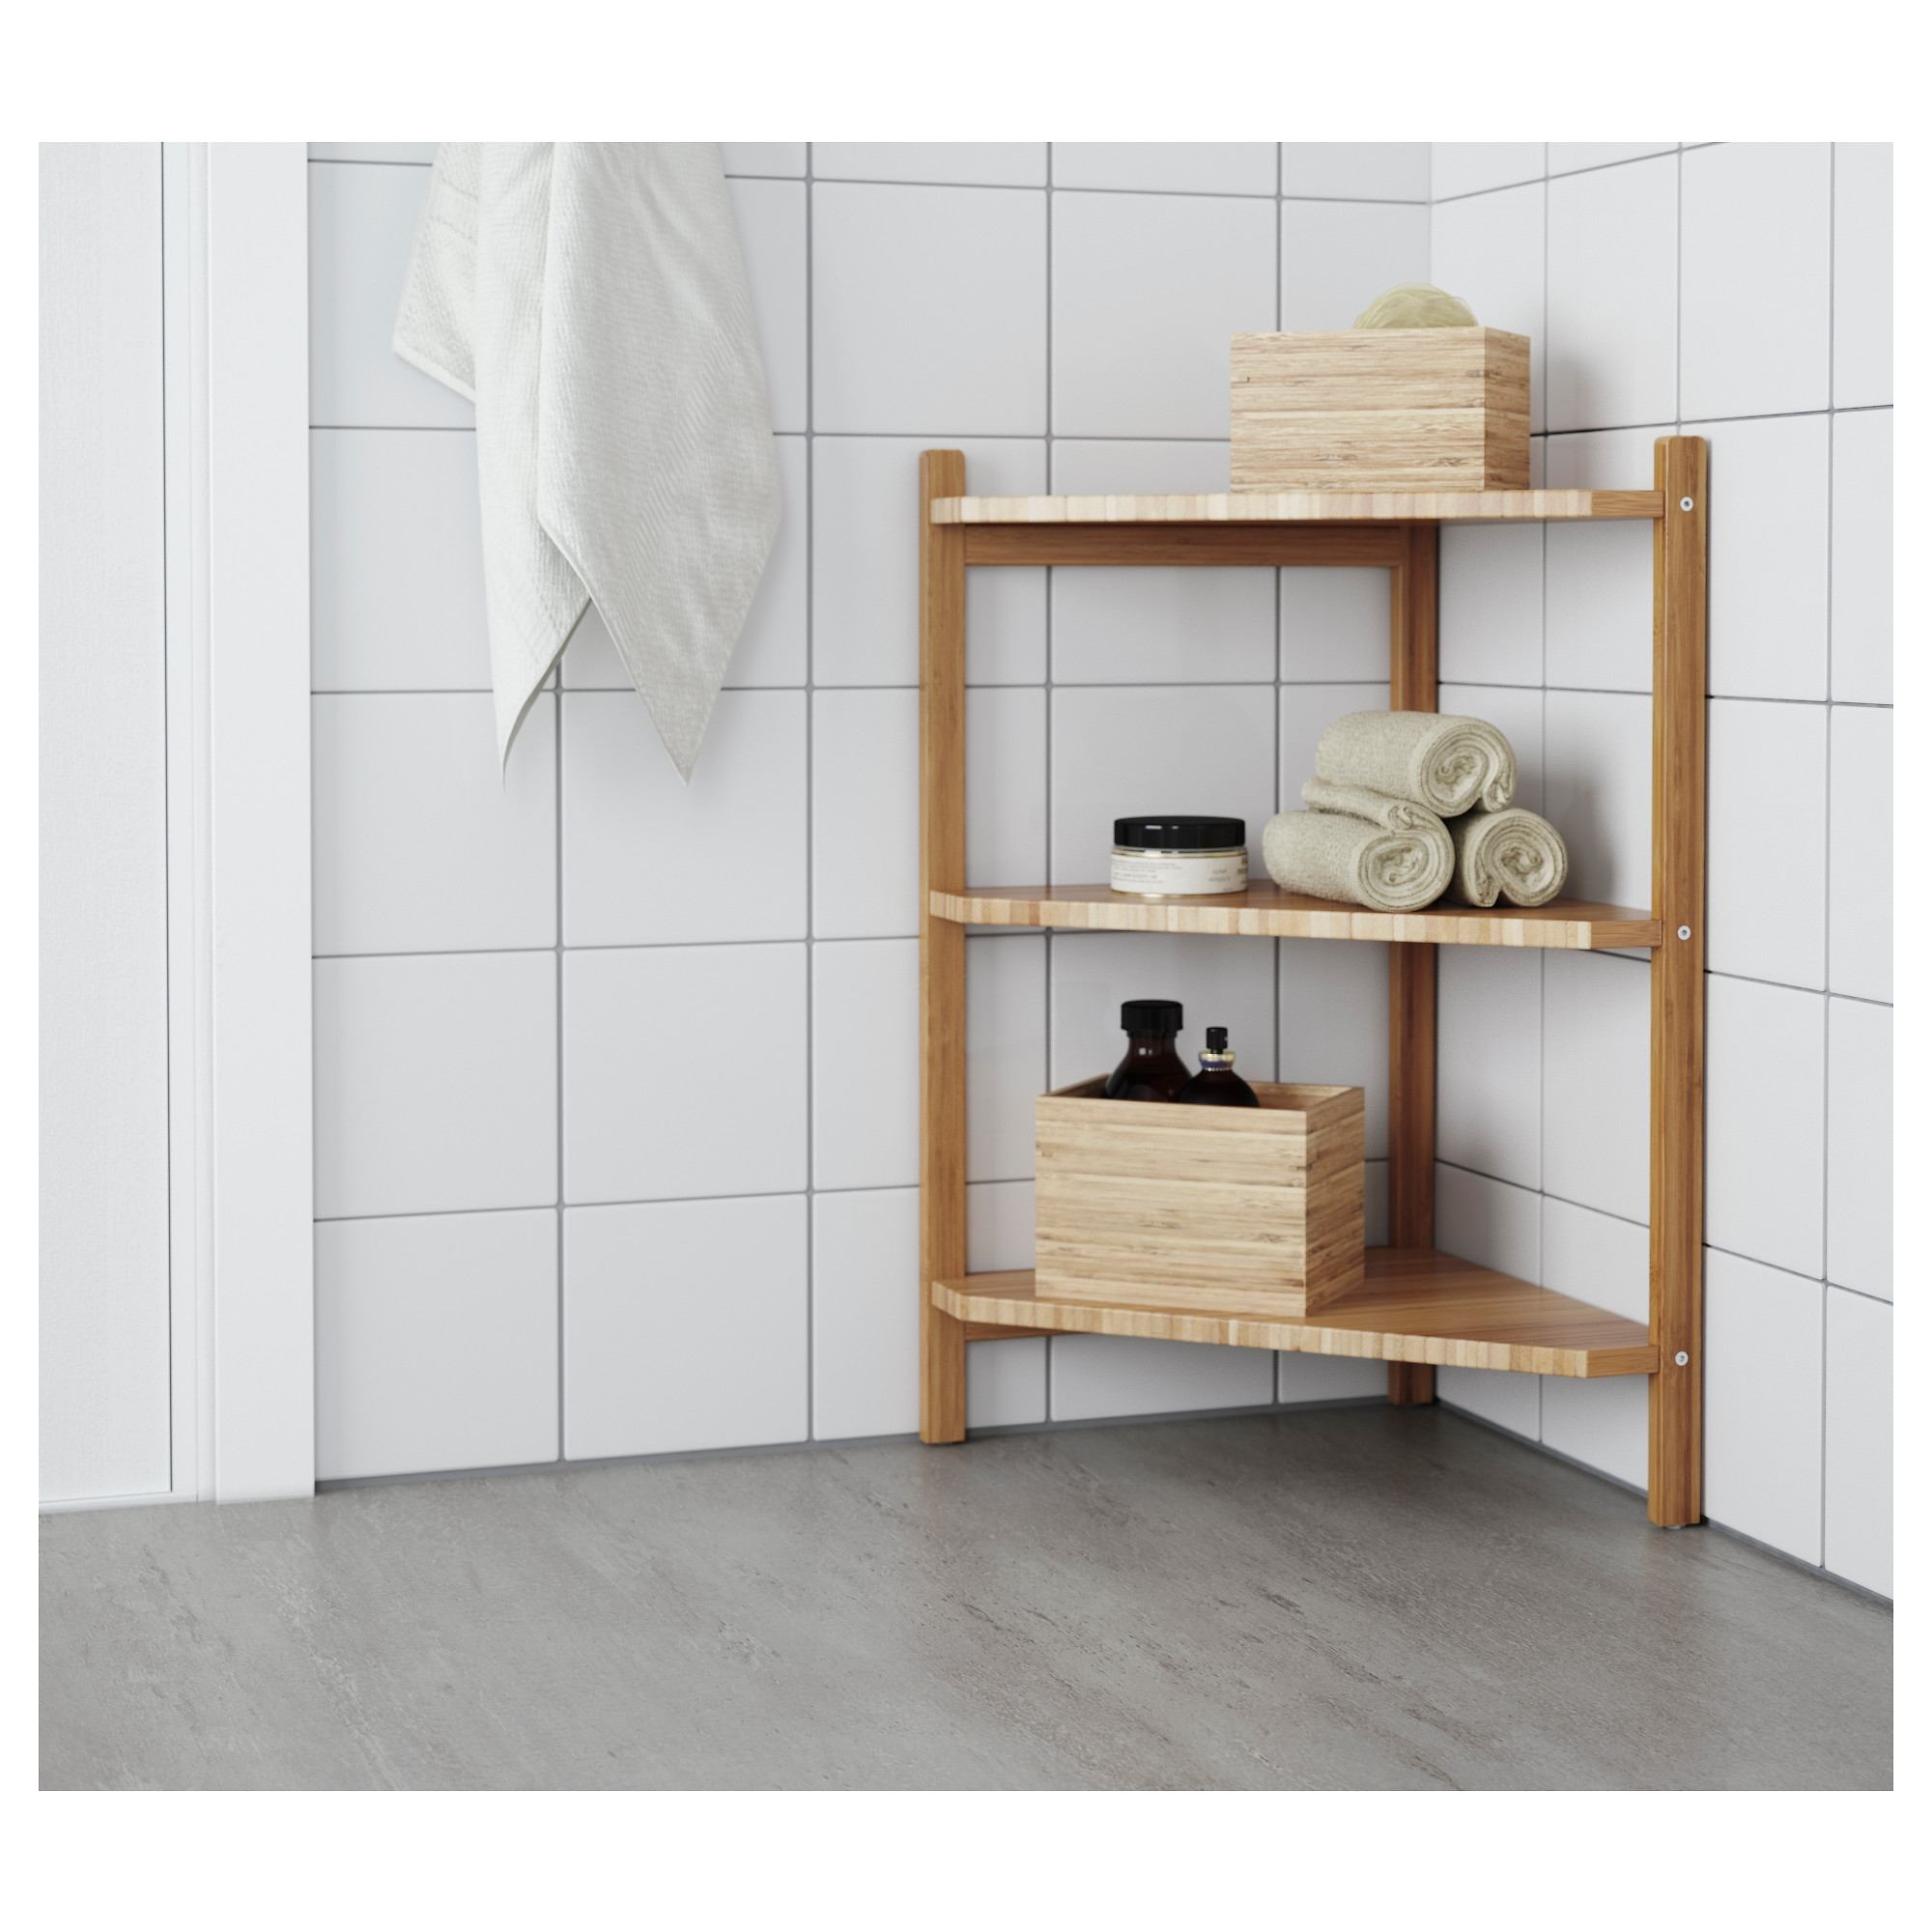 Rgrund Sink Shelfcorner Shelf Ikea Throughout Corner Shelf (#10 of 12)